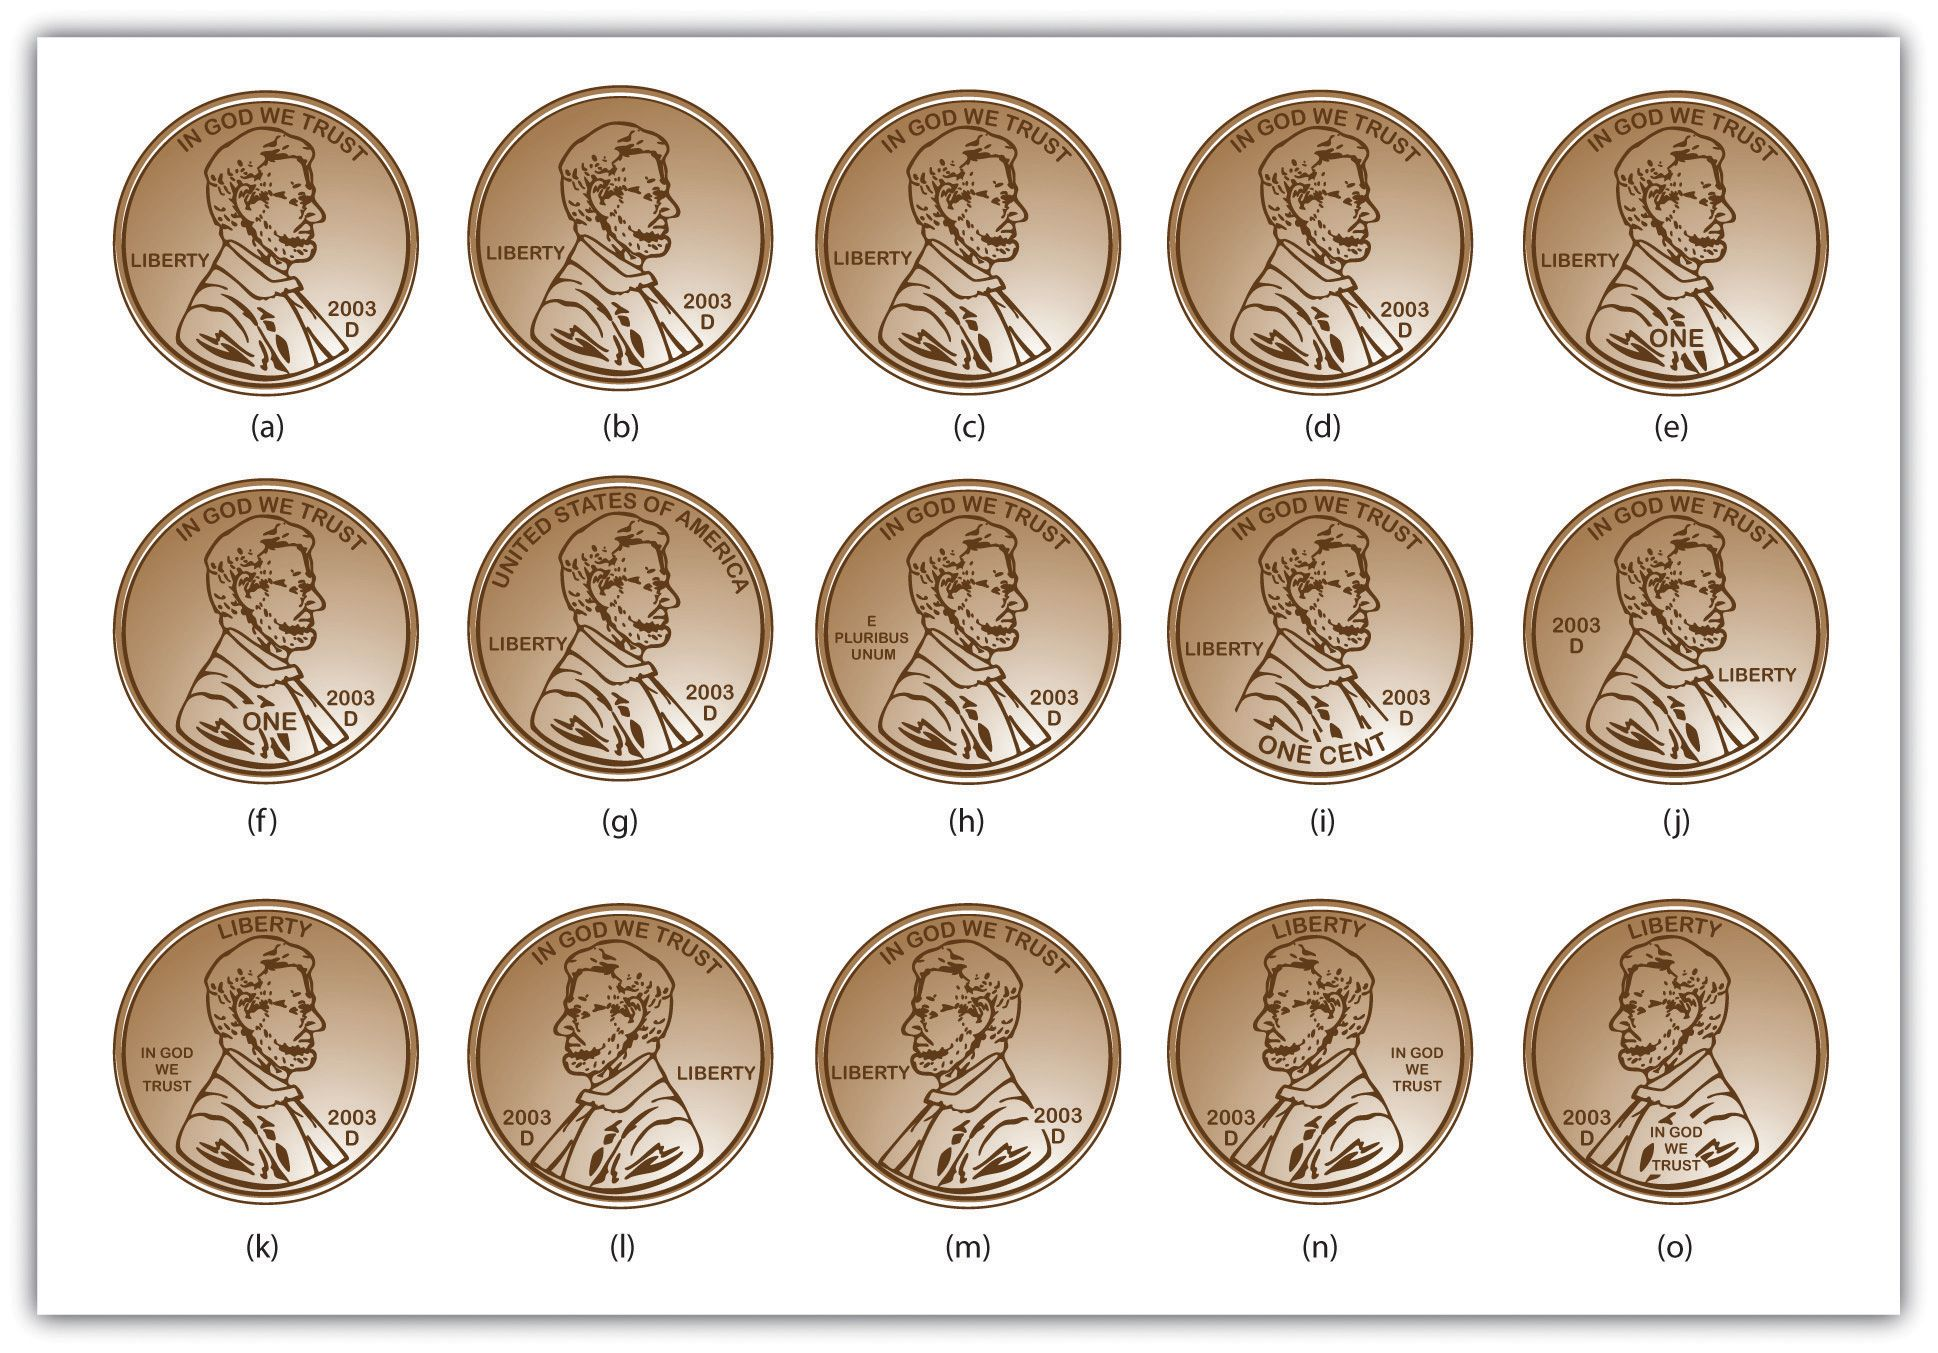 Examples of fake pennies